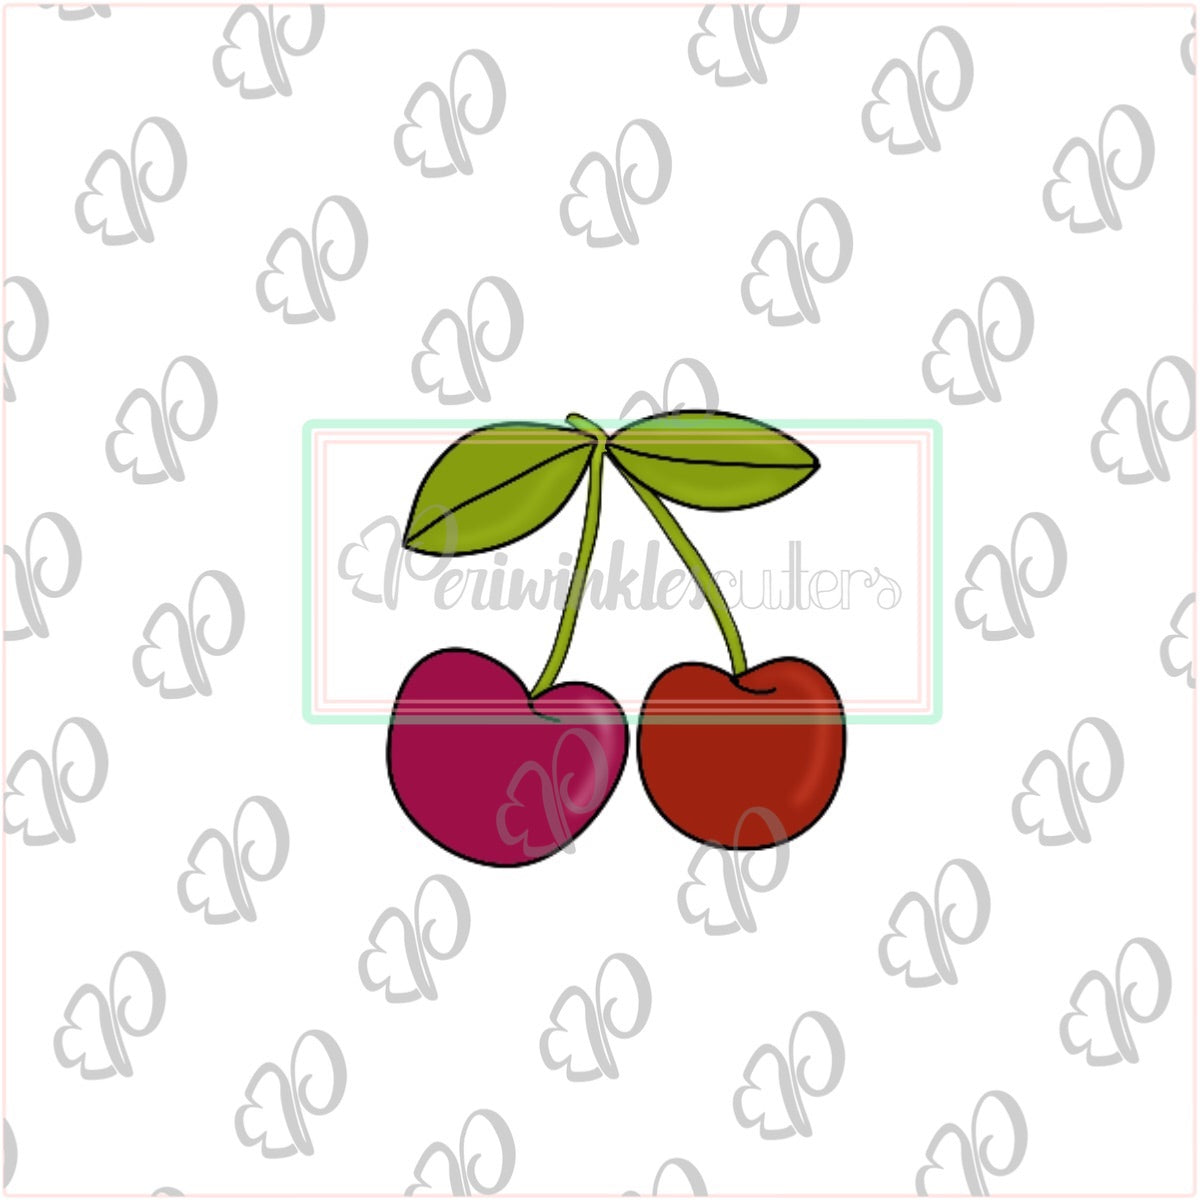 Cherry Cookie Cutter -  Cherries Cookie Cutter - Summer Cookie Cutter - Fruits Cookie Cutter - Periwinkles Cutters LLC